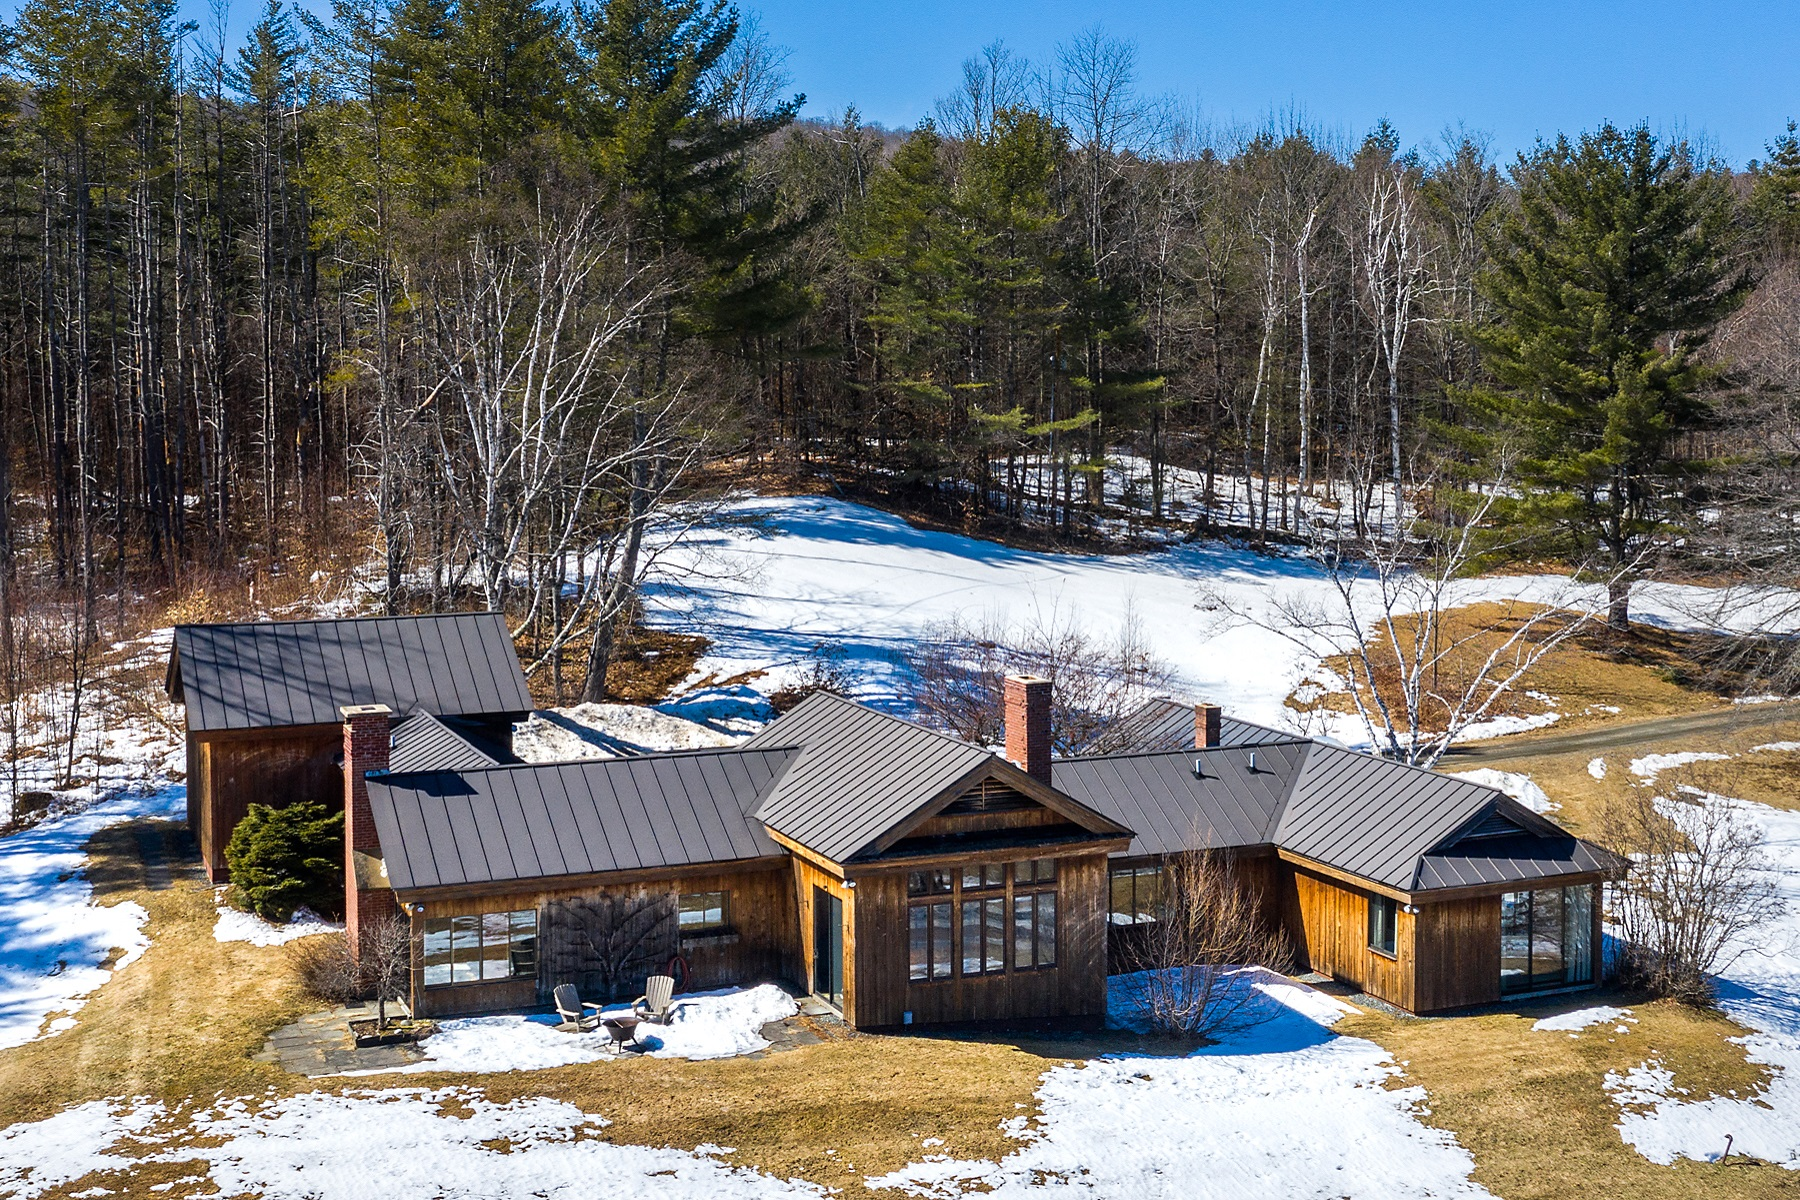 Single Family Homes for Sale at 00000000 255 Delano Road West Windsor, Vermont 05062 United States